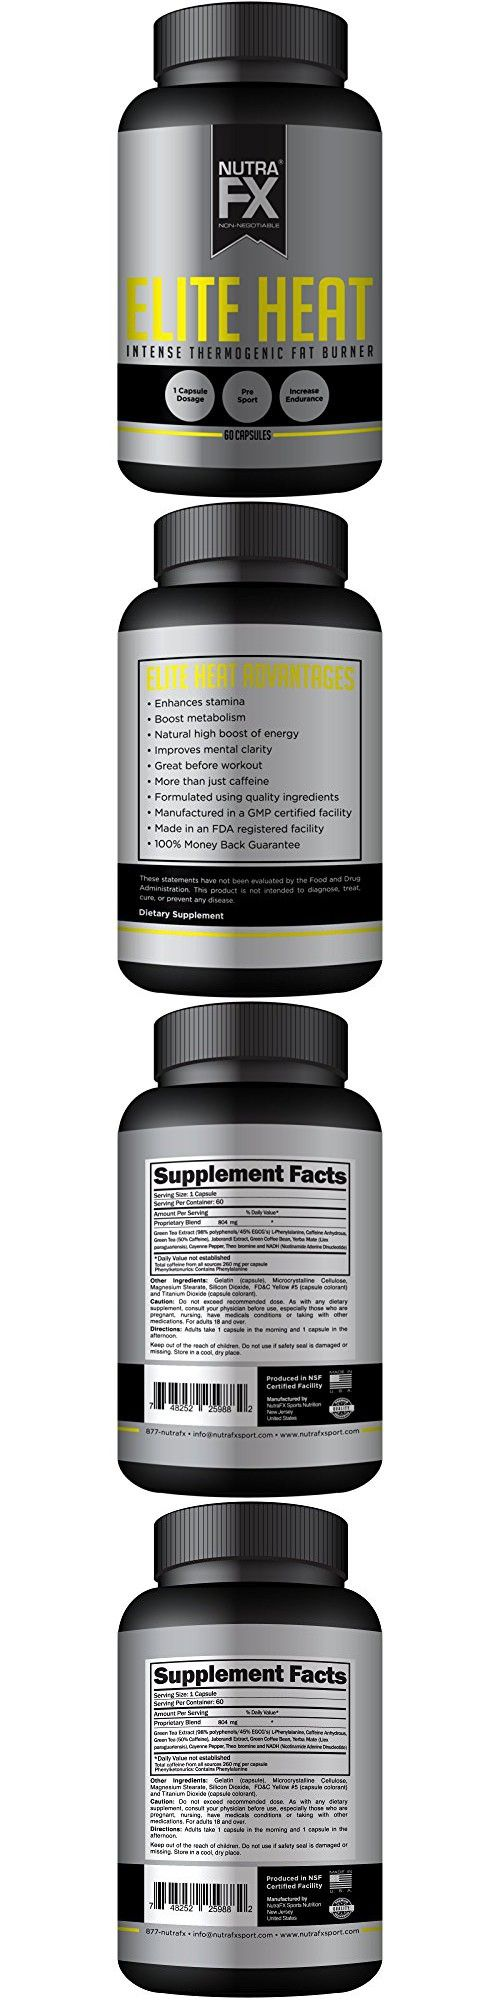 NutraFX Elite Heat - Focus and Energy Pills + Thermogenic Fat Burner (60 Yellow Capsules), Formerly NutraFX Yellow Energy Extreme